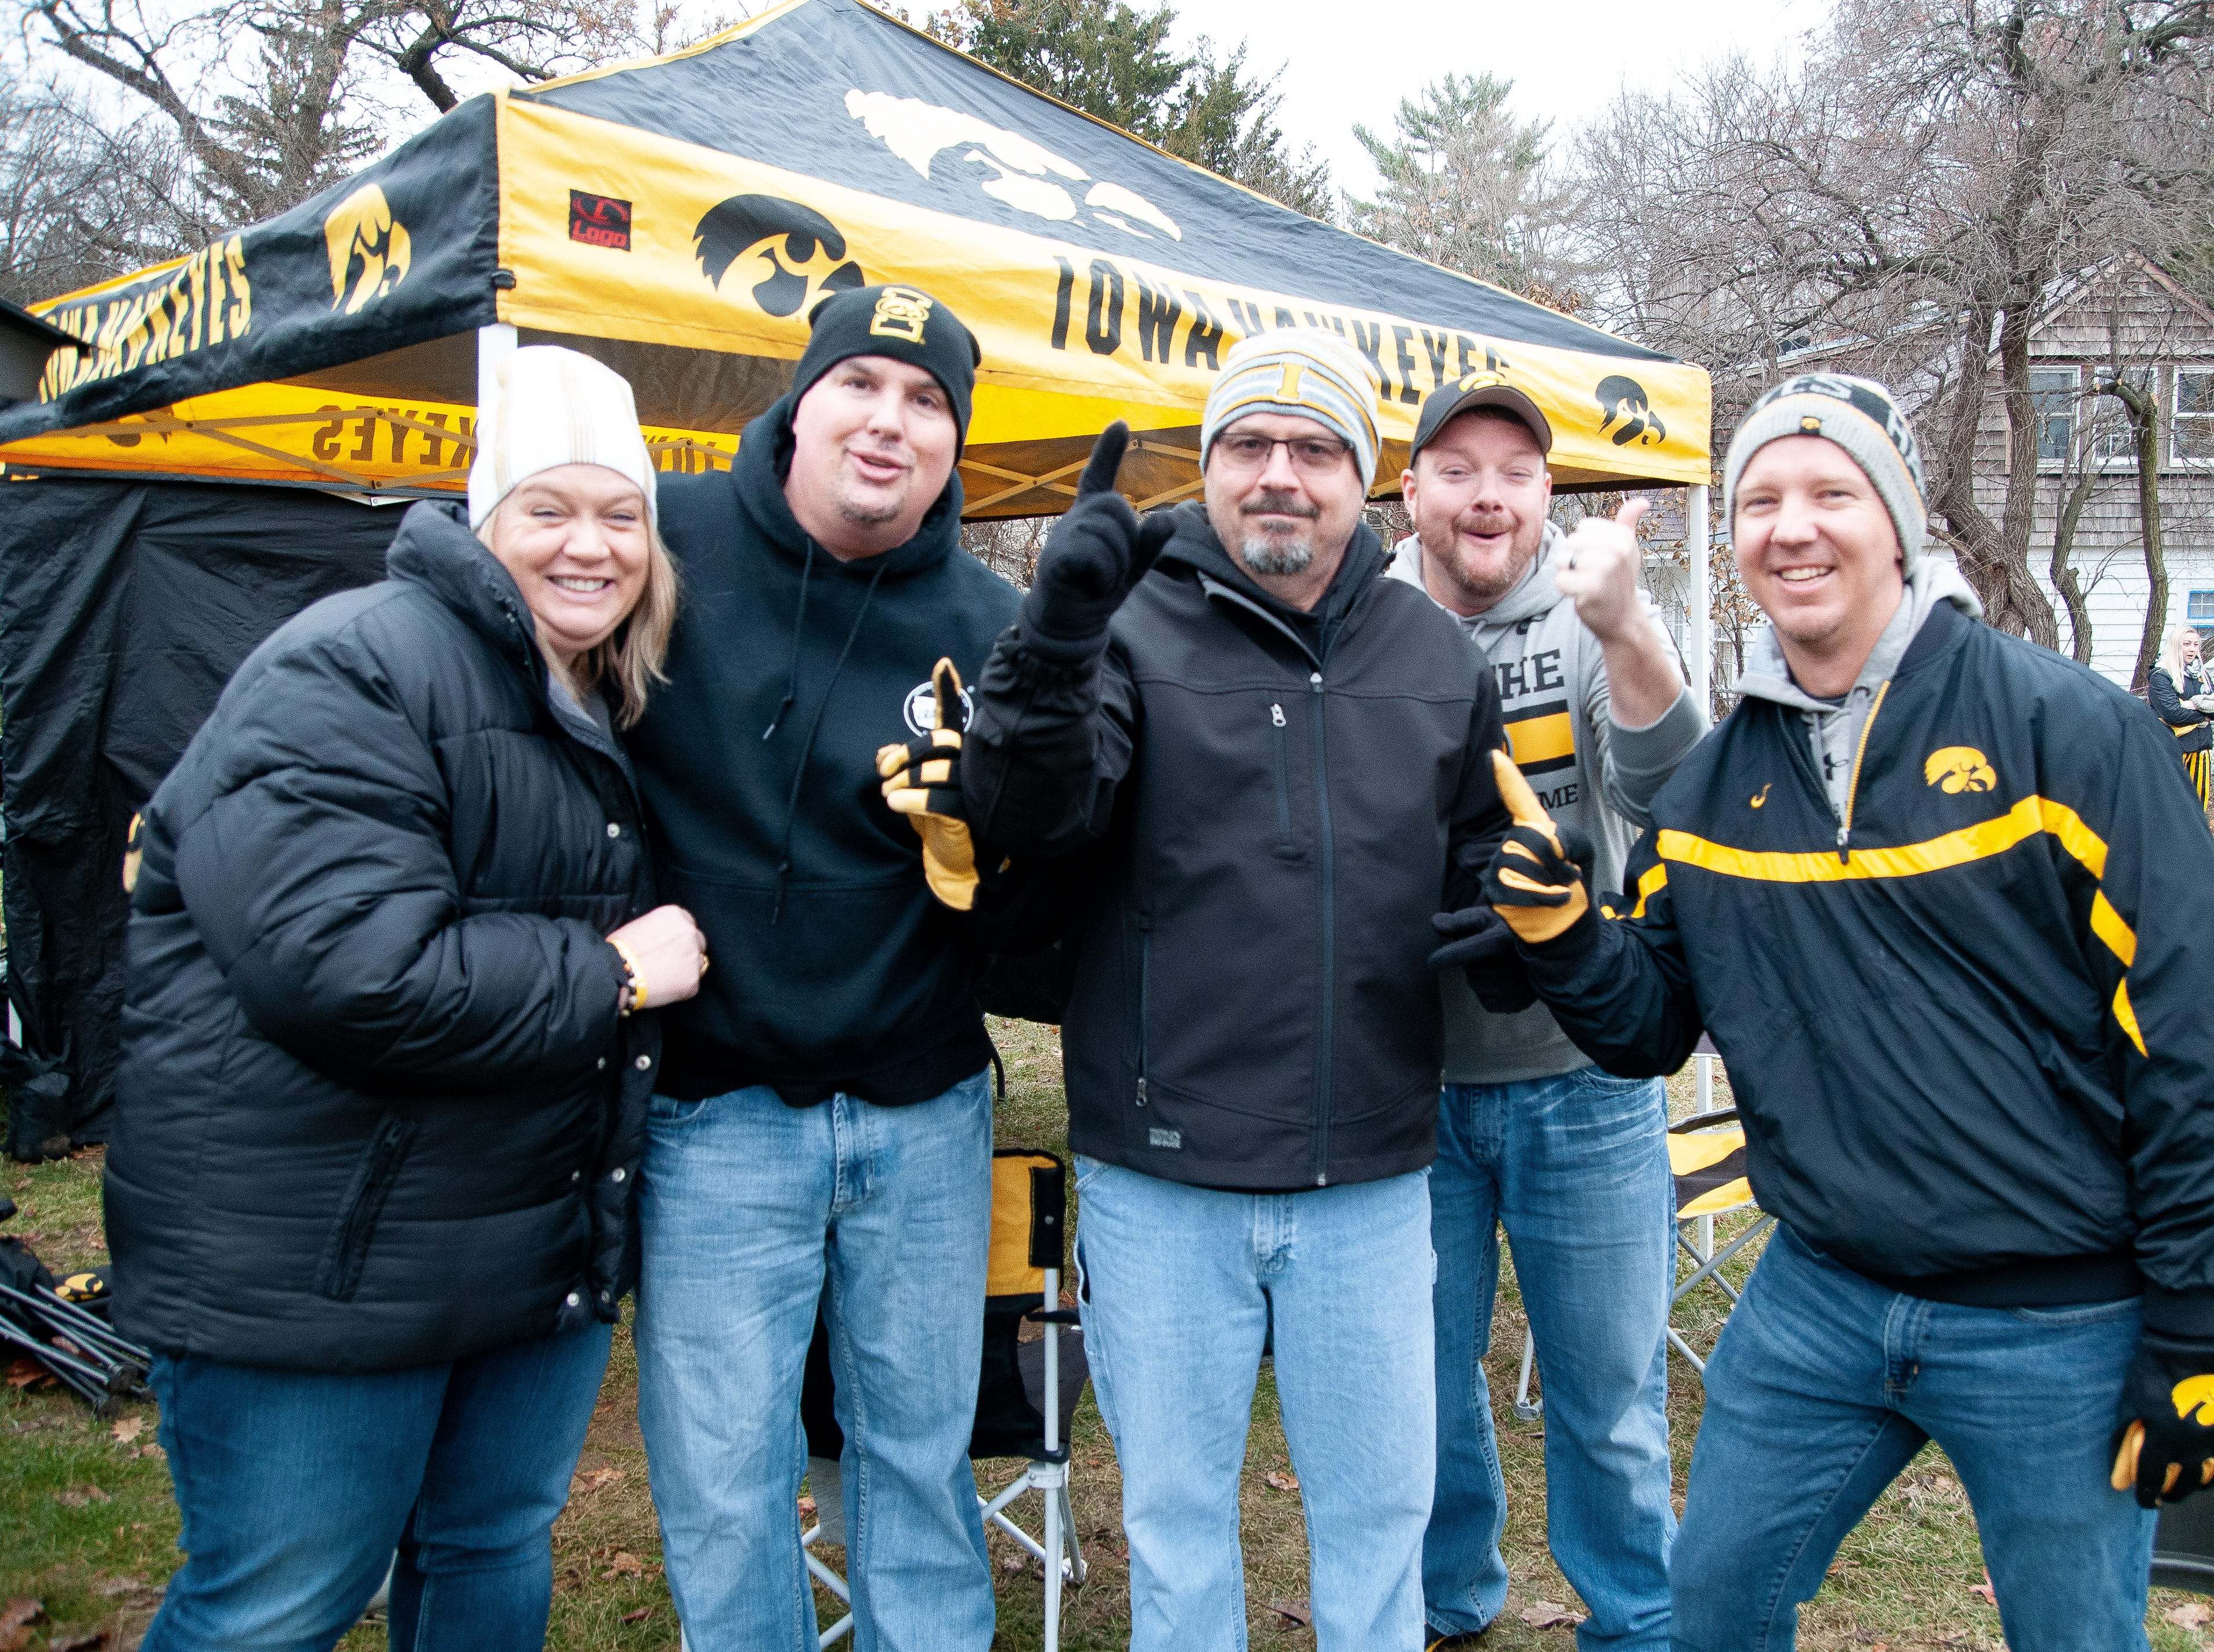 The Wedge Tailgate, of North Liberty and Des Moines, Friday, Nov. 23, 2018, while tailgating before the Iowa game against Nebraska in Iowa City.